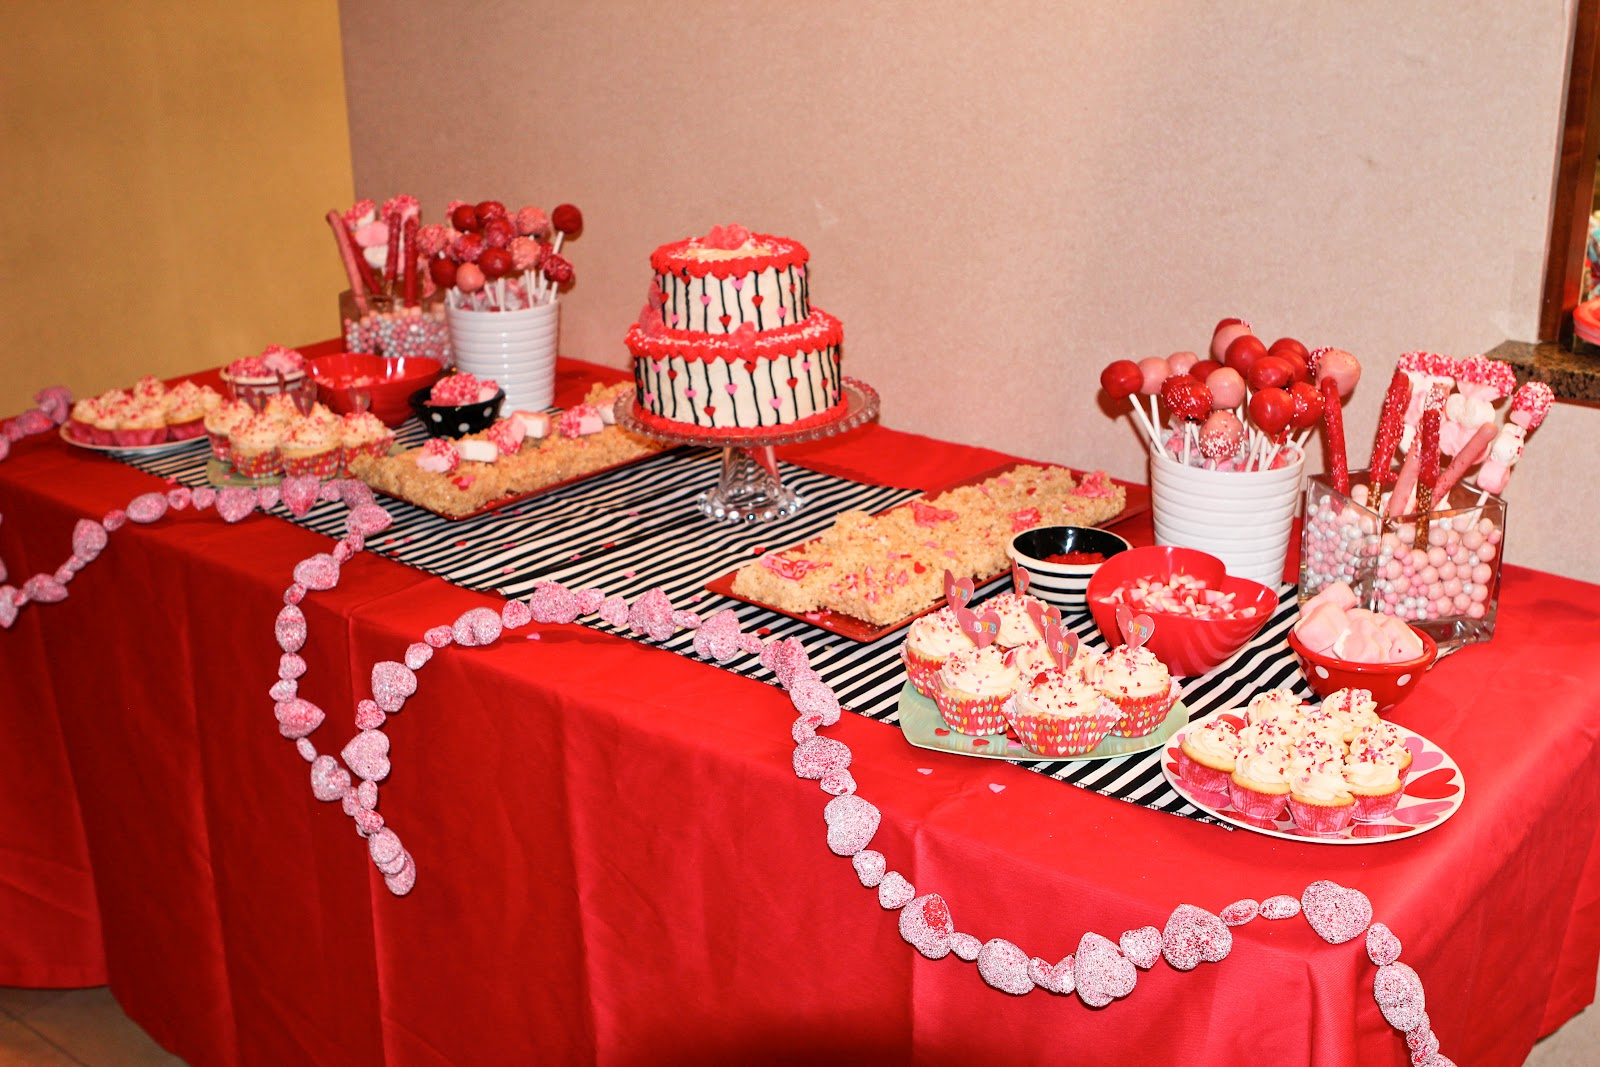 Her Mom Choose A Valentines Themed Birthday Party, So Between The Two Of  Us, We Came Up With This!